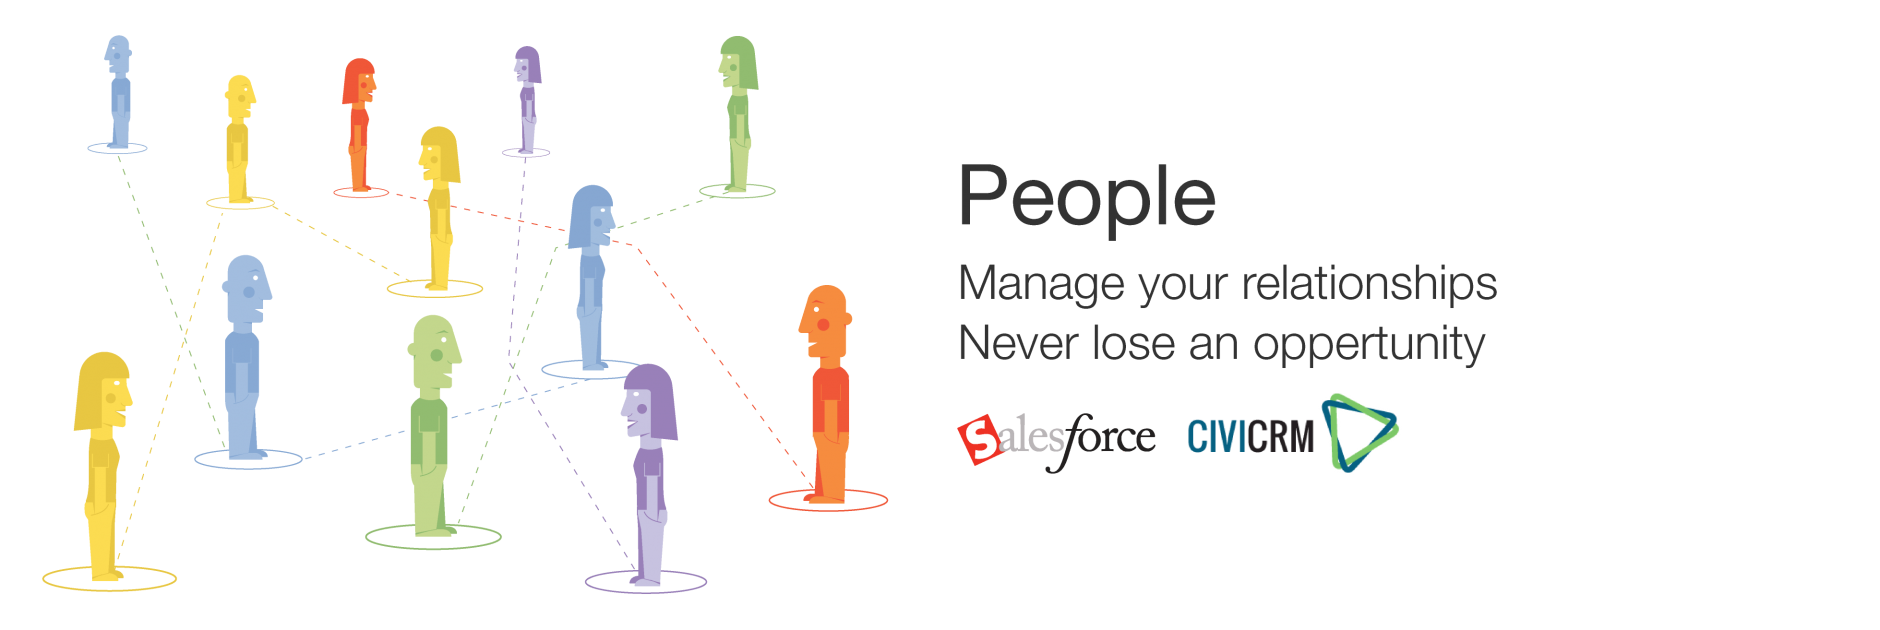 People - Manage your Relationships